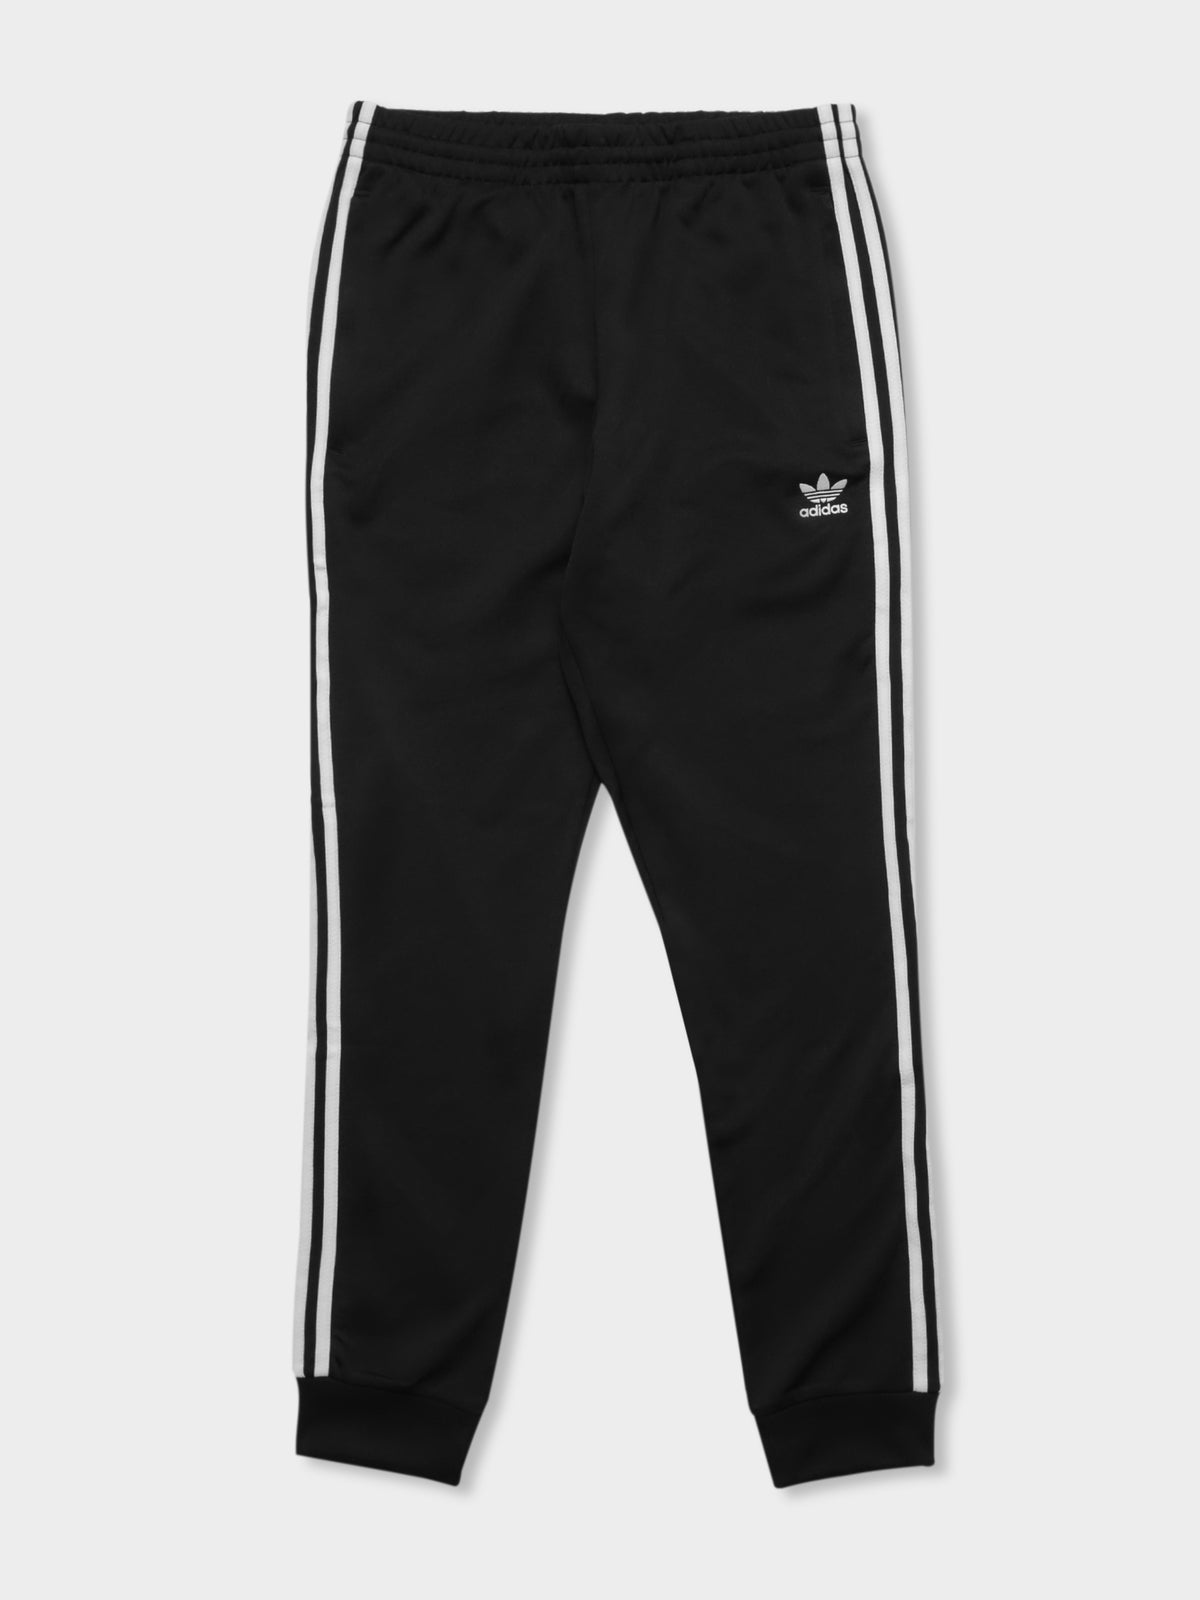 Super Star Track Pants in Black